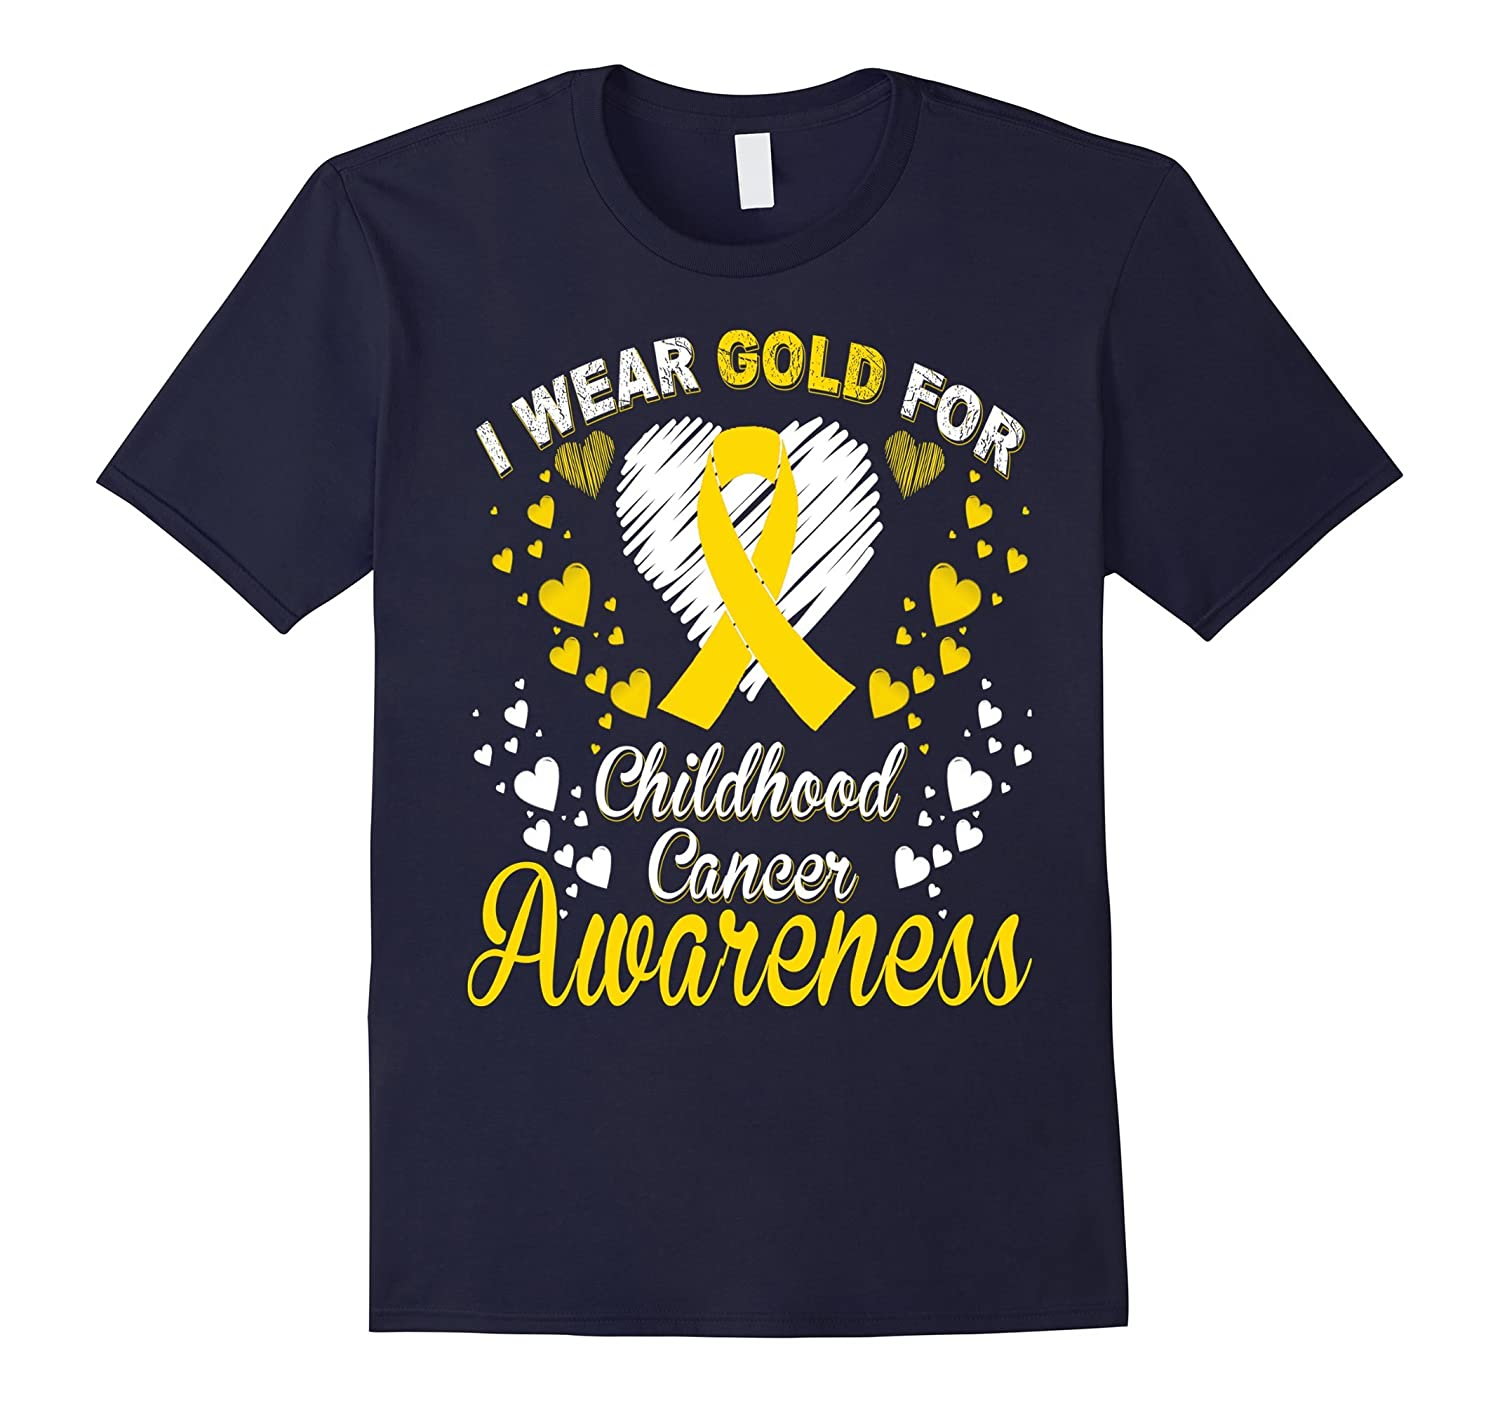 I Wear Gold For Childhood Cancer T-Shirt